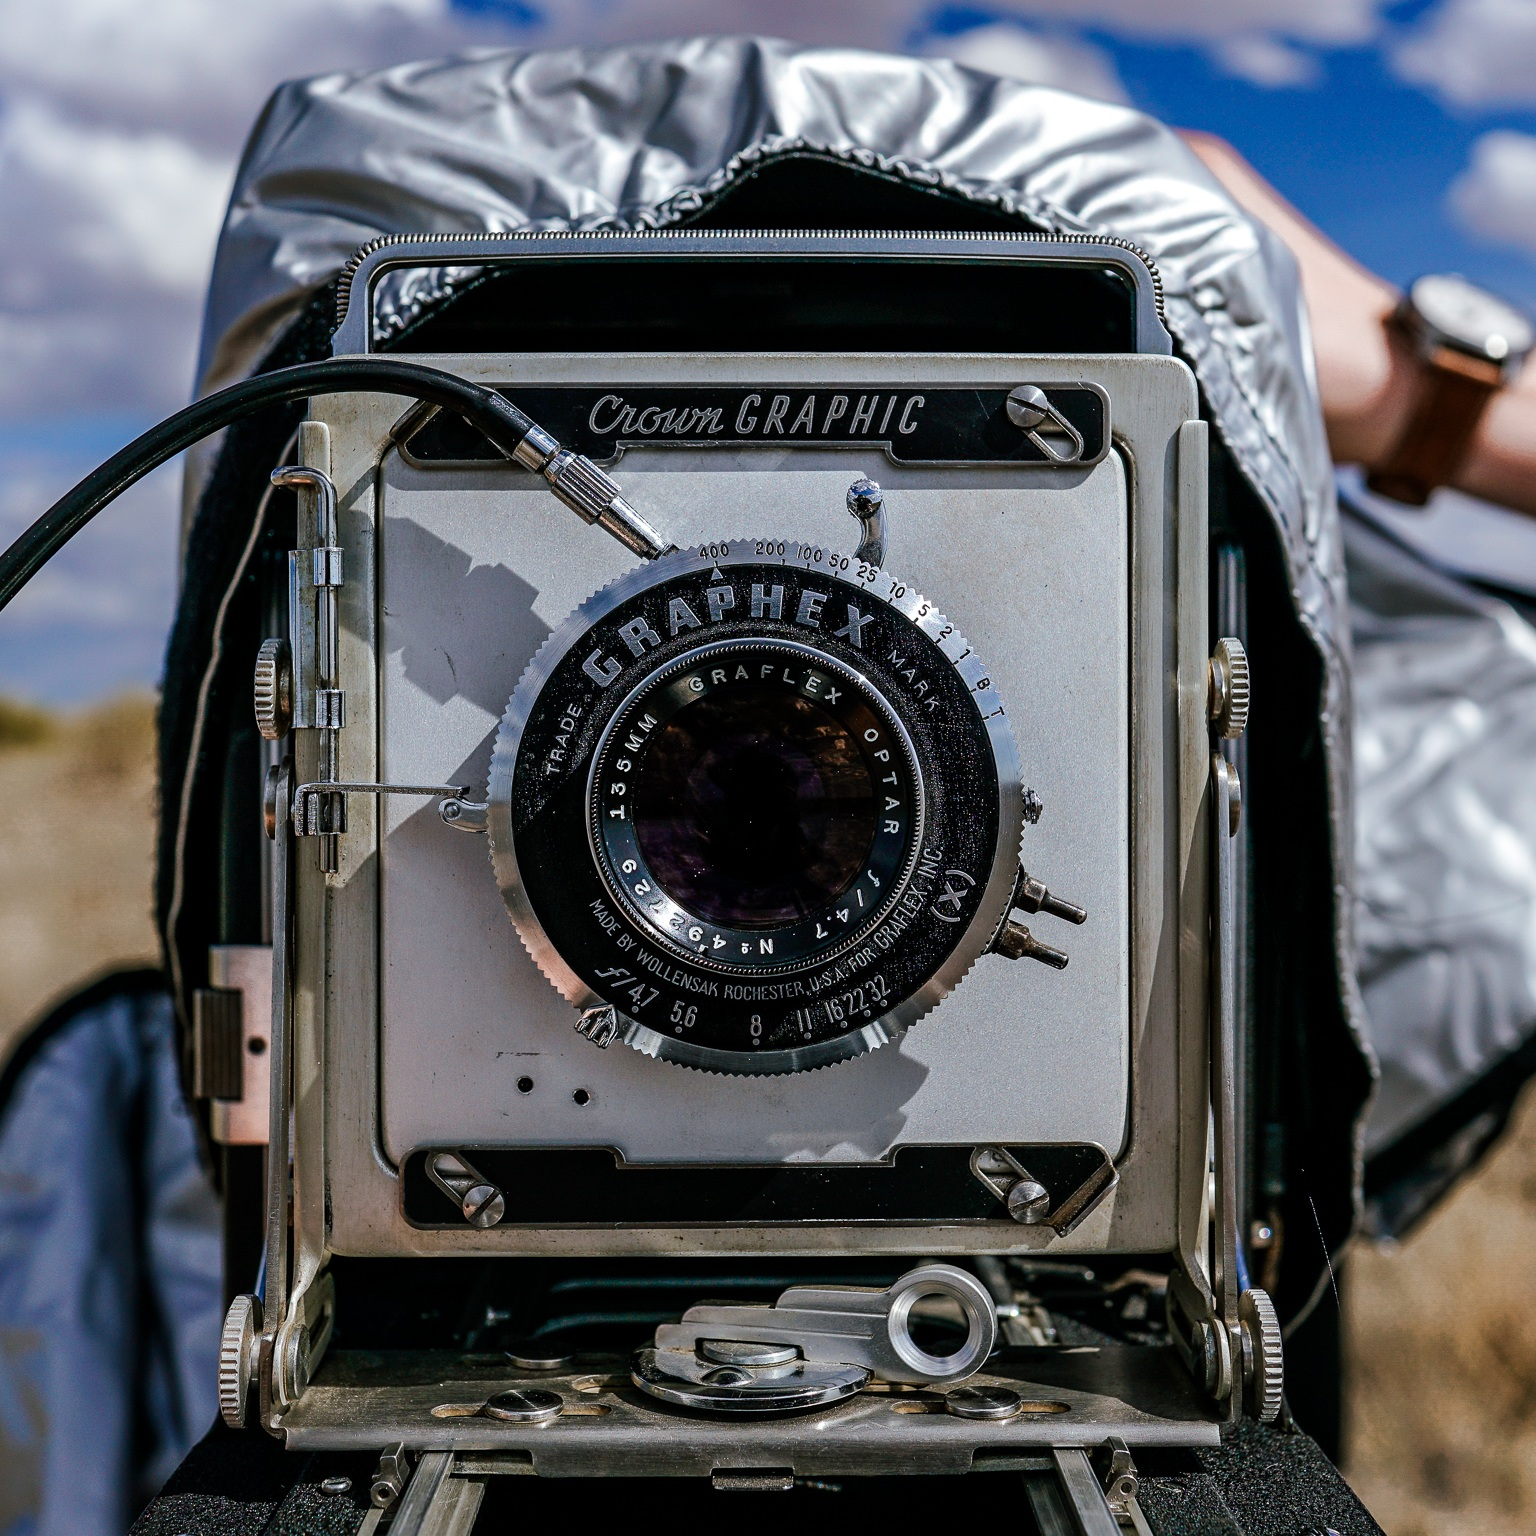 CHAPTER TWO:One Shot - Large format photography is much more than just a labor of love.